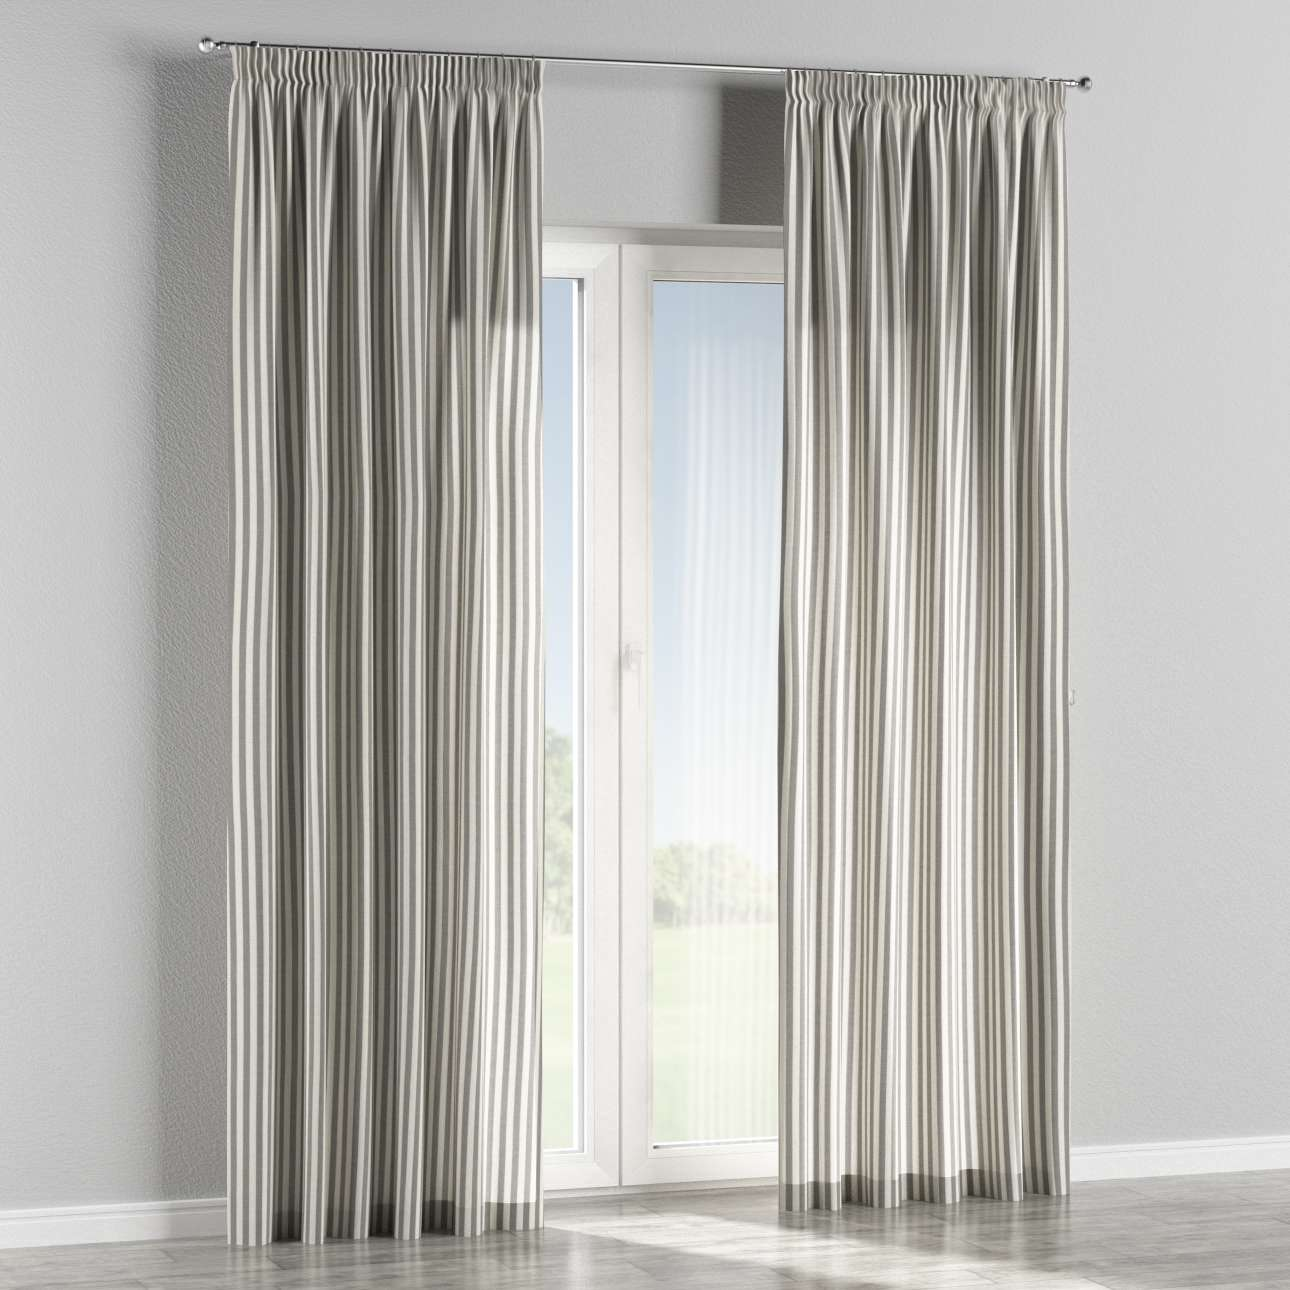 Pencil pleat curtains 130 × 260 cm (51 × 102 inch) in collection Quadro, fabric: 136-12